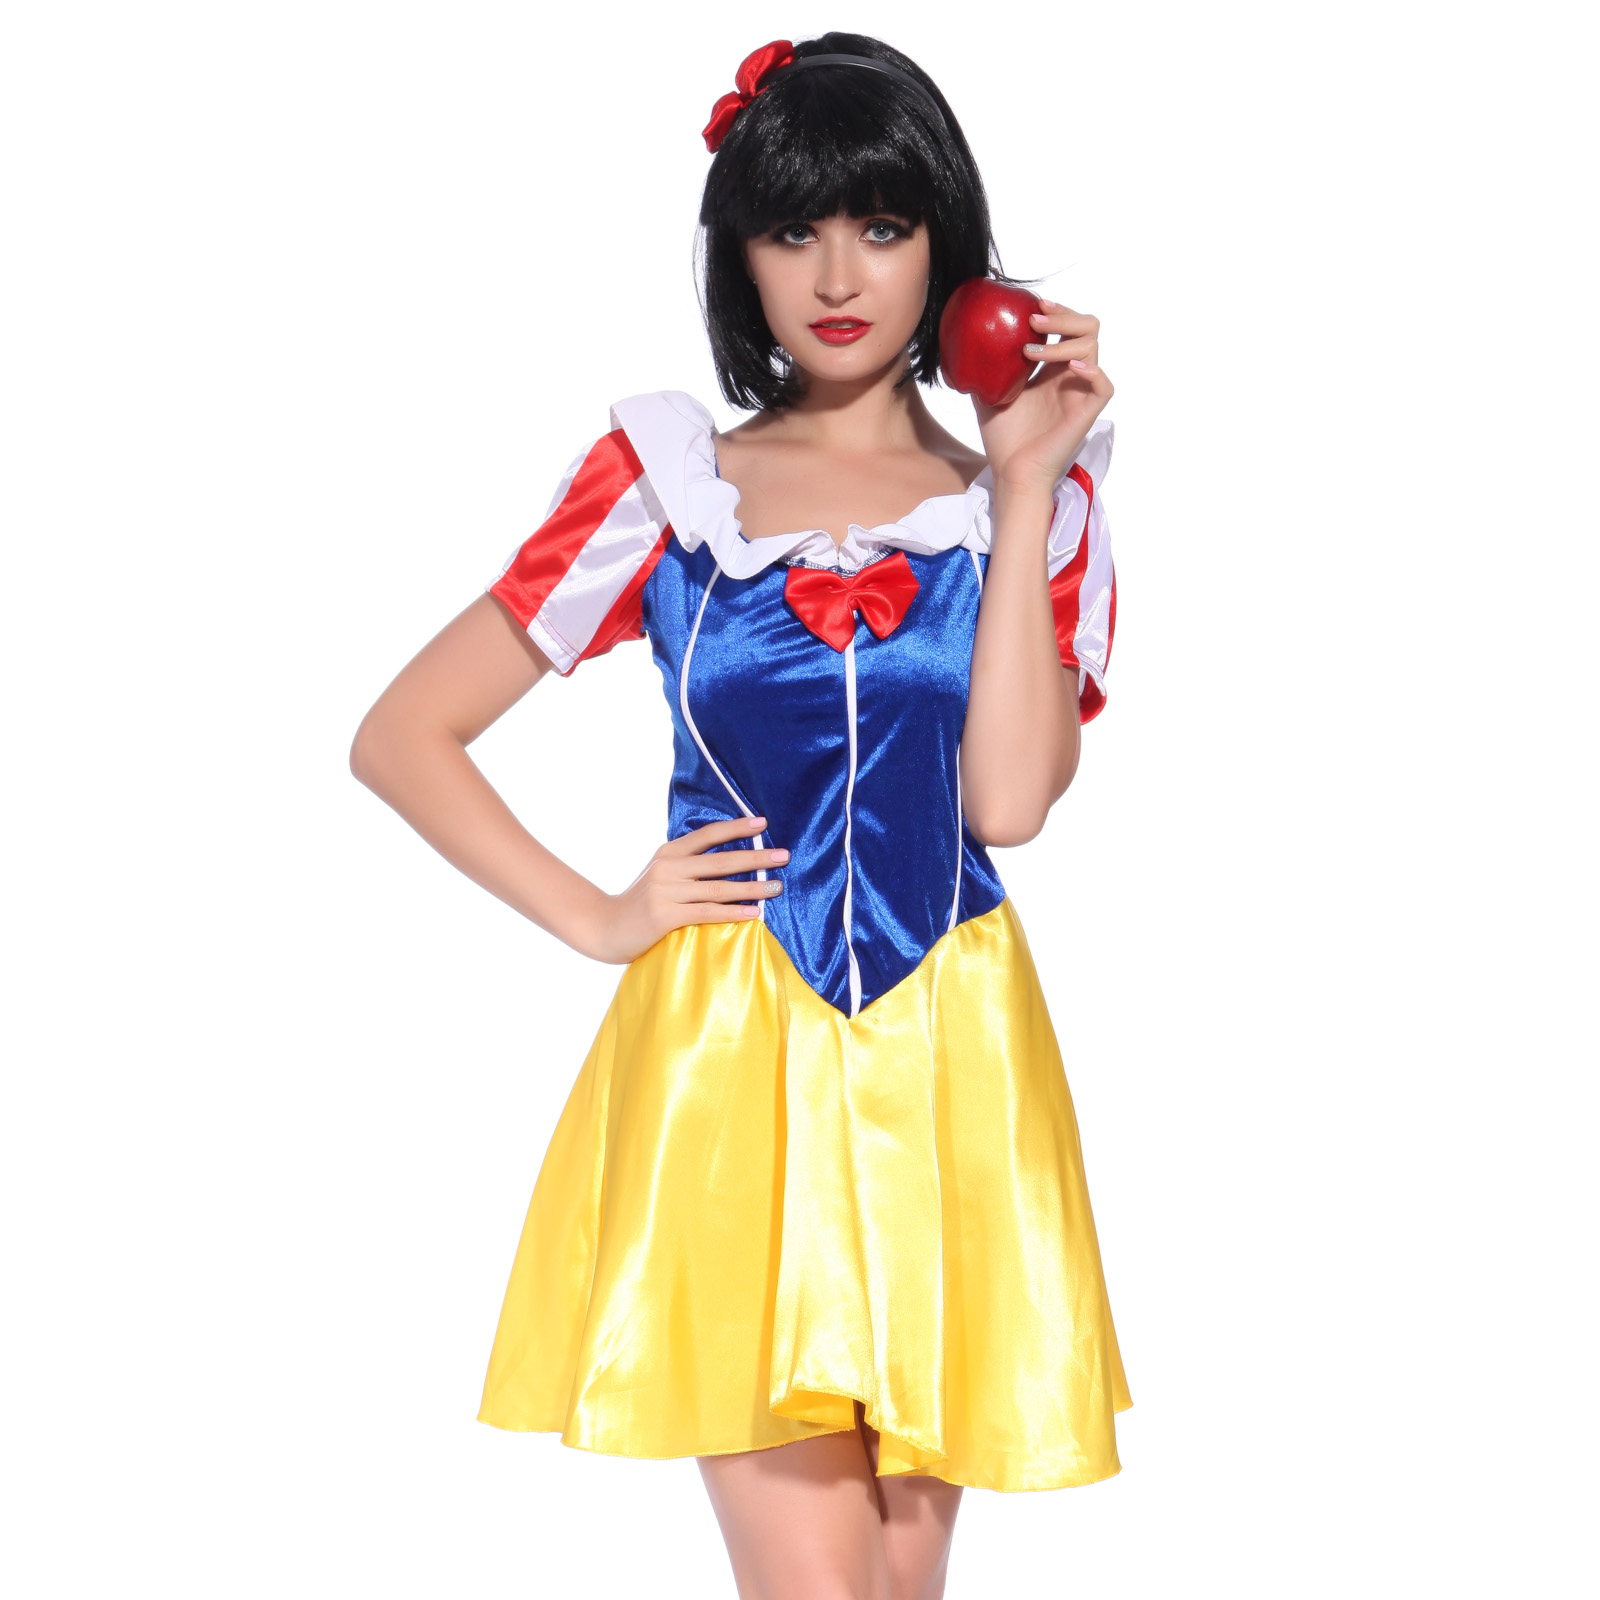 ladies fairytale snow white costume storybook princess fancy dress outfit ebay. Black Bedroom Furniture Sets. Home Design Ideas